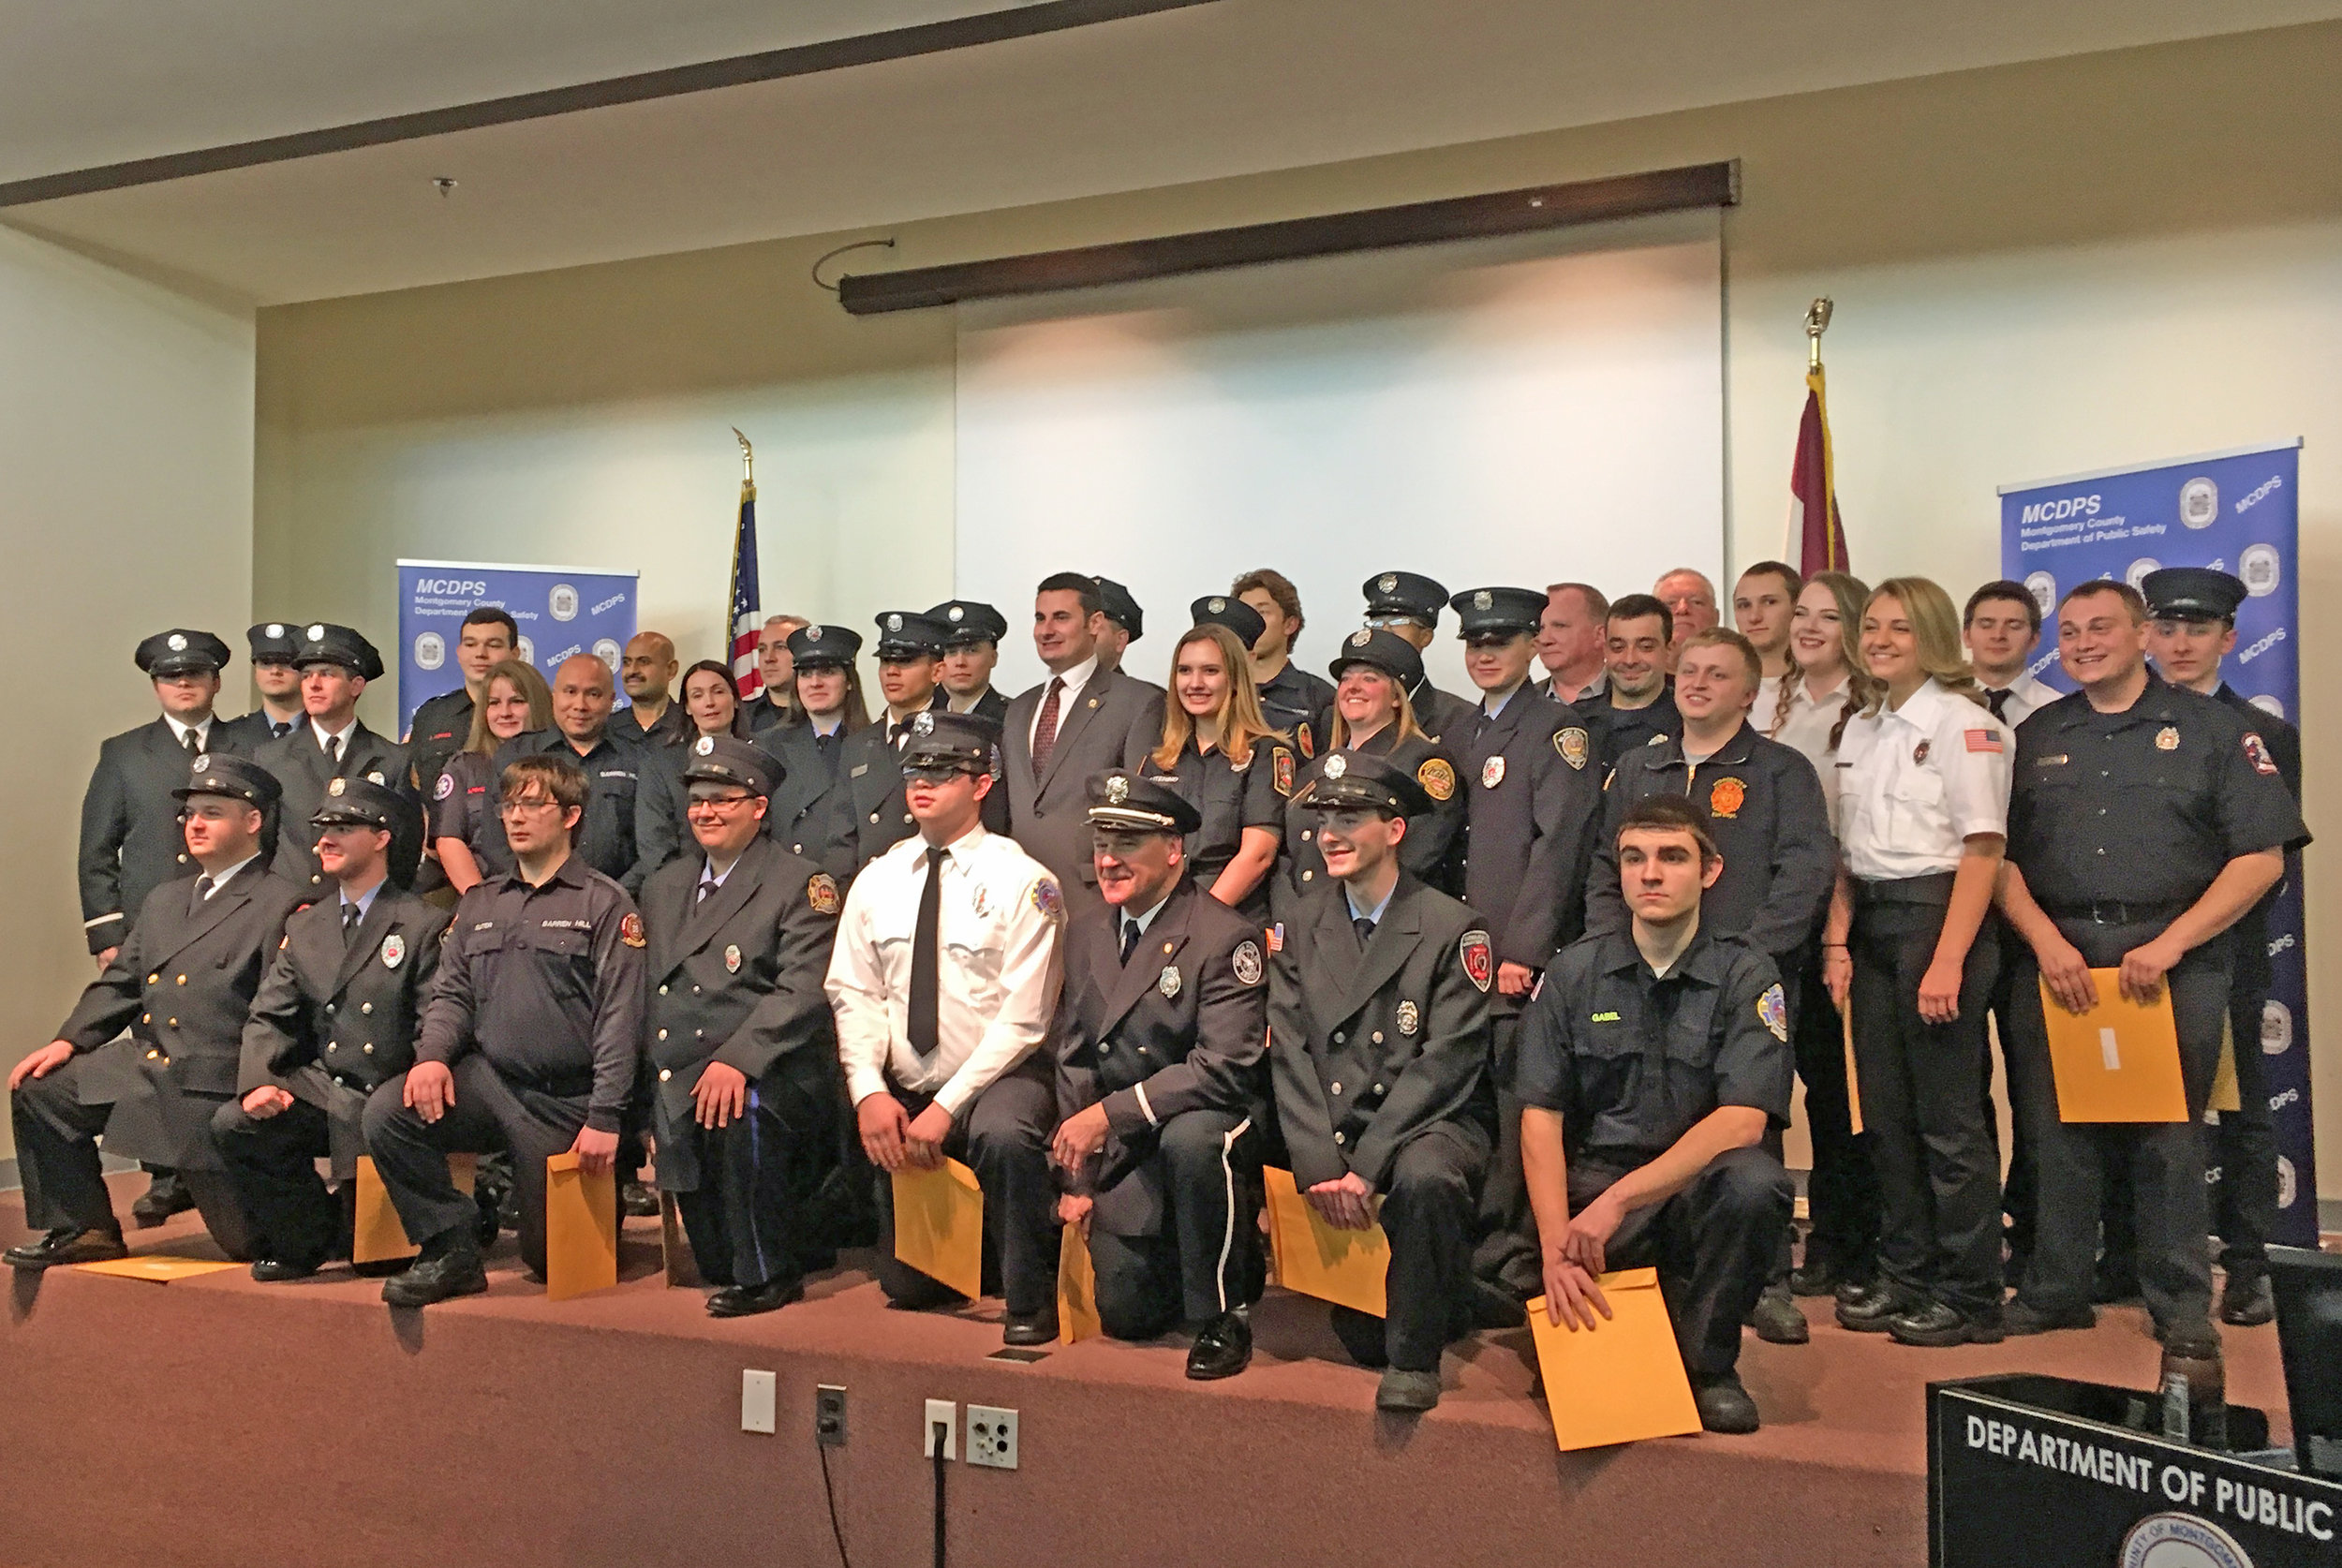 Glenside Local: Local Firefighters Graduate From Montgomery County Fire Academy